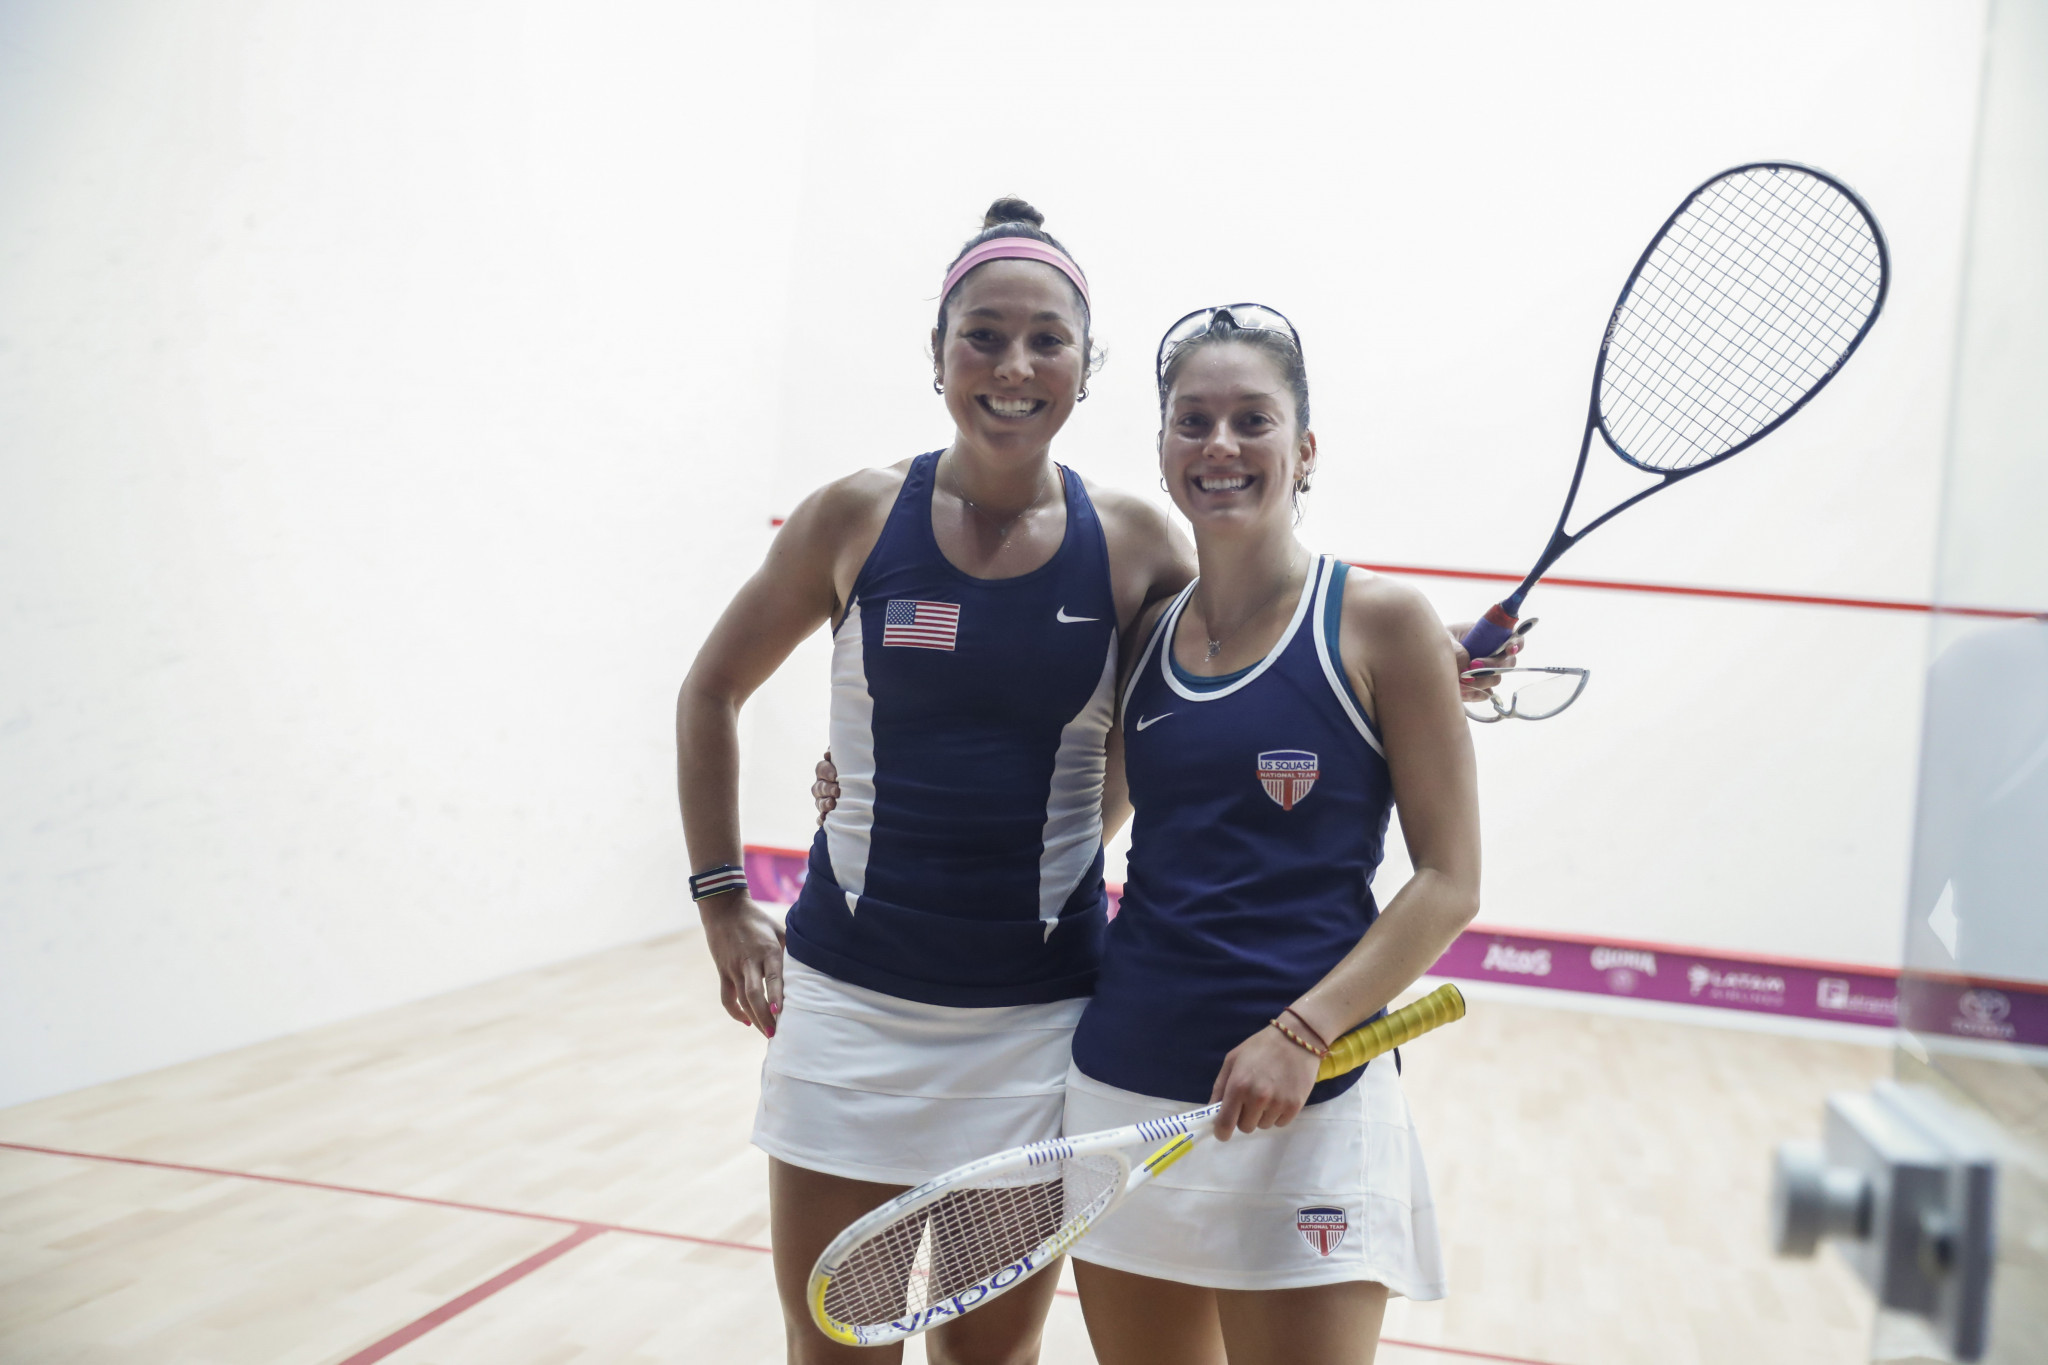 Sisters Amanda and Sabrina Sobhy of the United States earned gold in the women's squash doubles ©Lima 2019